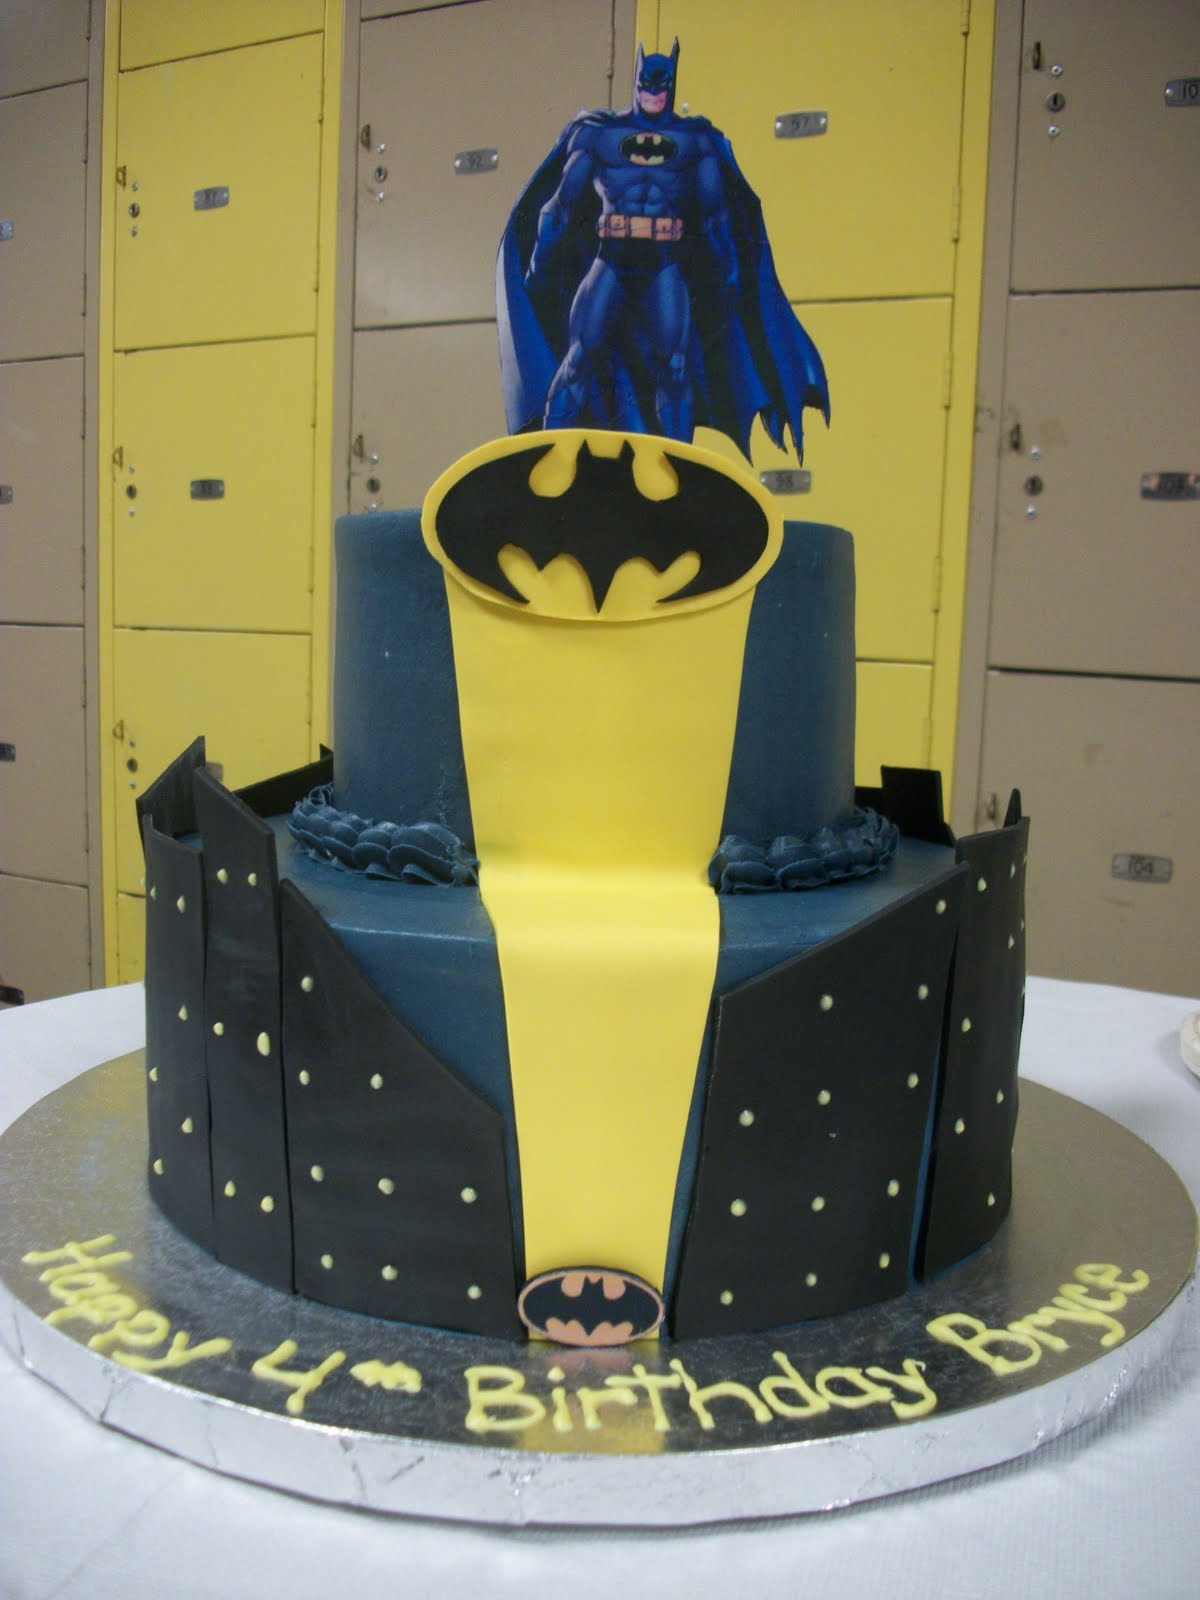 Outstanding Batman Cakes Decoration Ideas Little Birthday Cakes Personalised Birthday Cards Cominlily Jamesorg